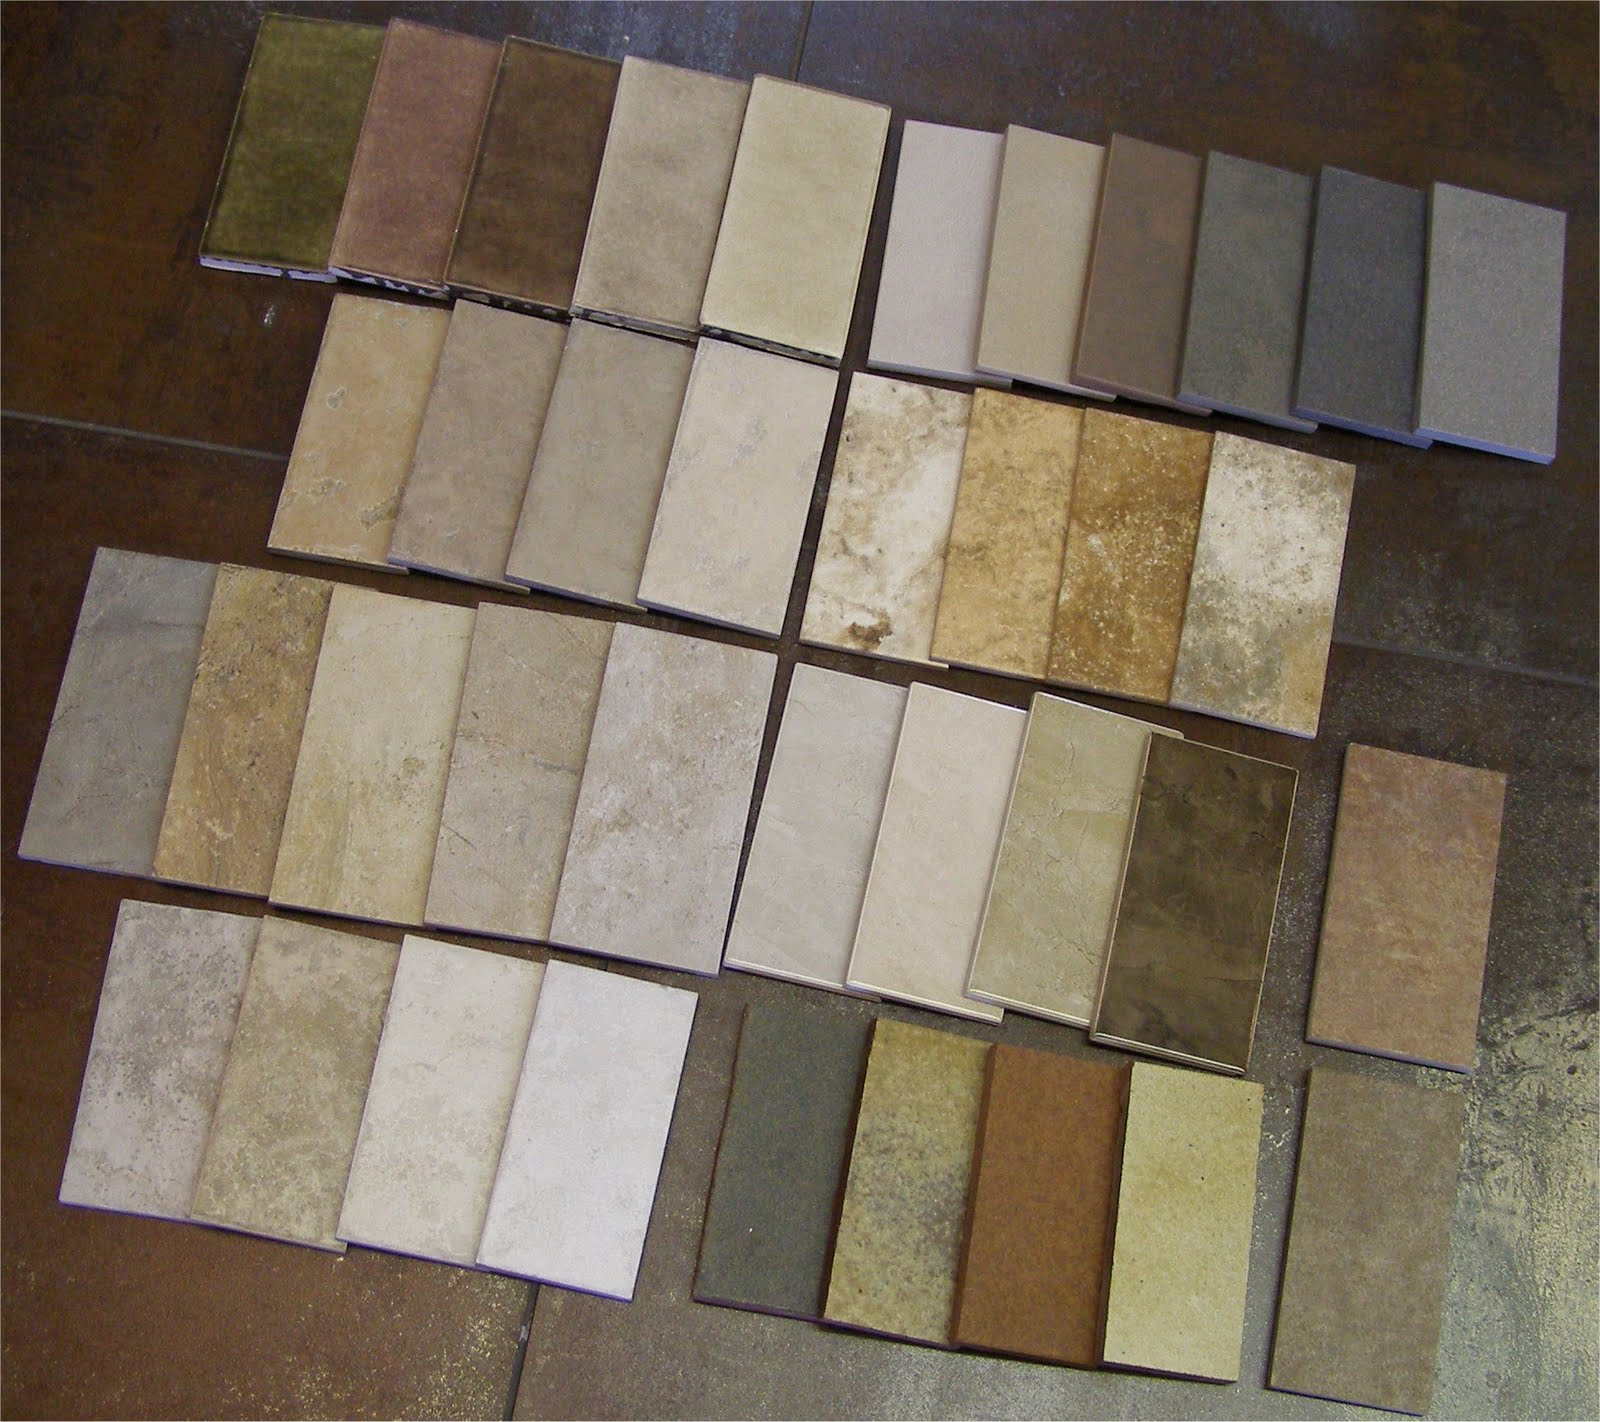 Miles of tile subway tile hwinter showroom blog miles of tile subway tile dailygadgetfo Choice Image